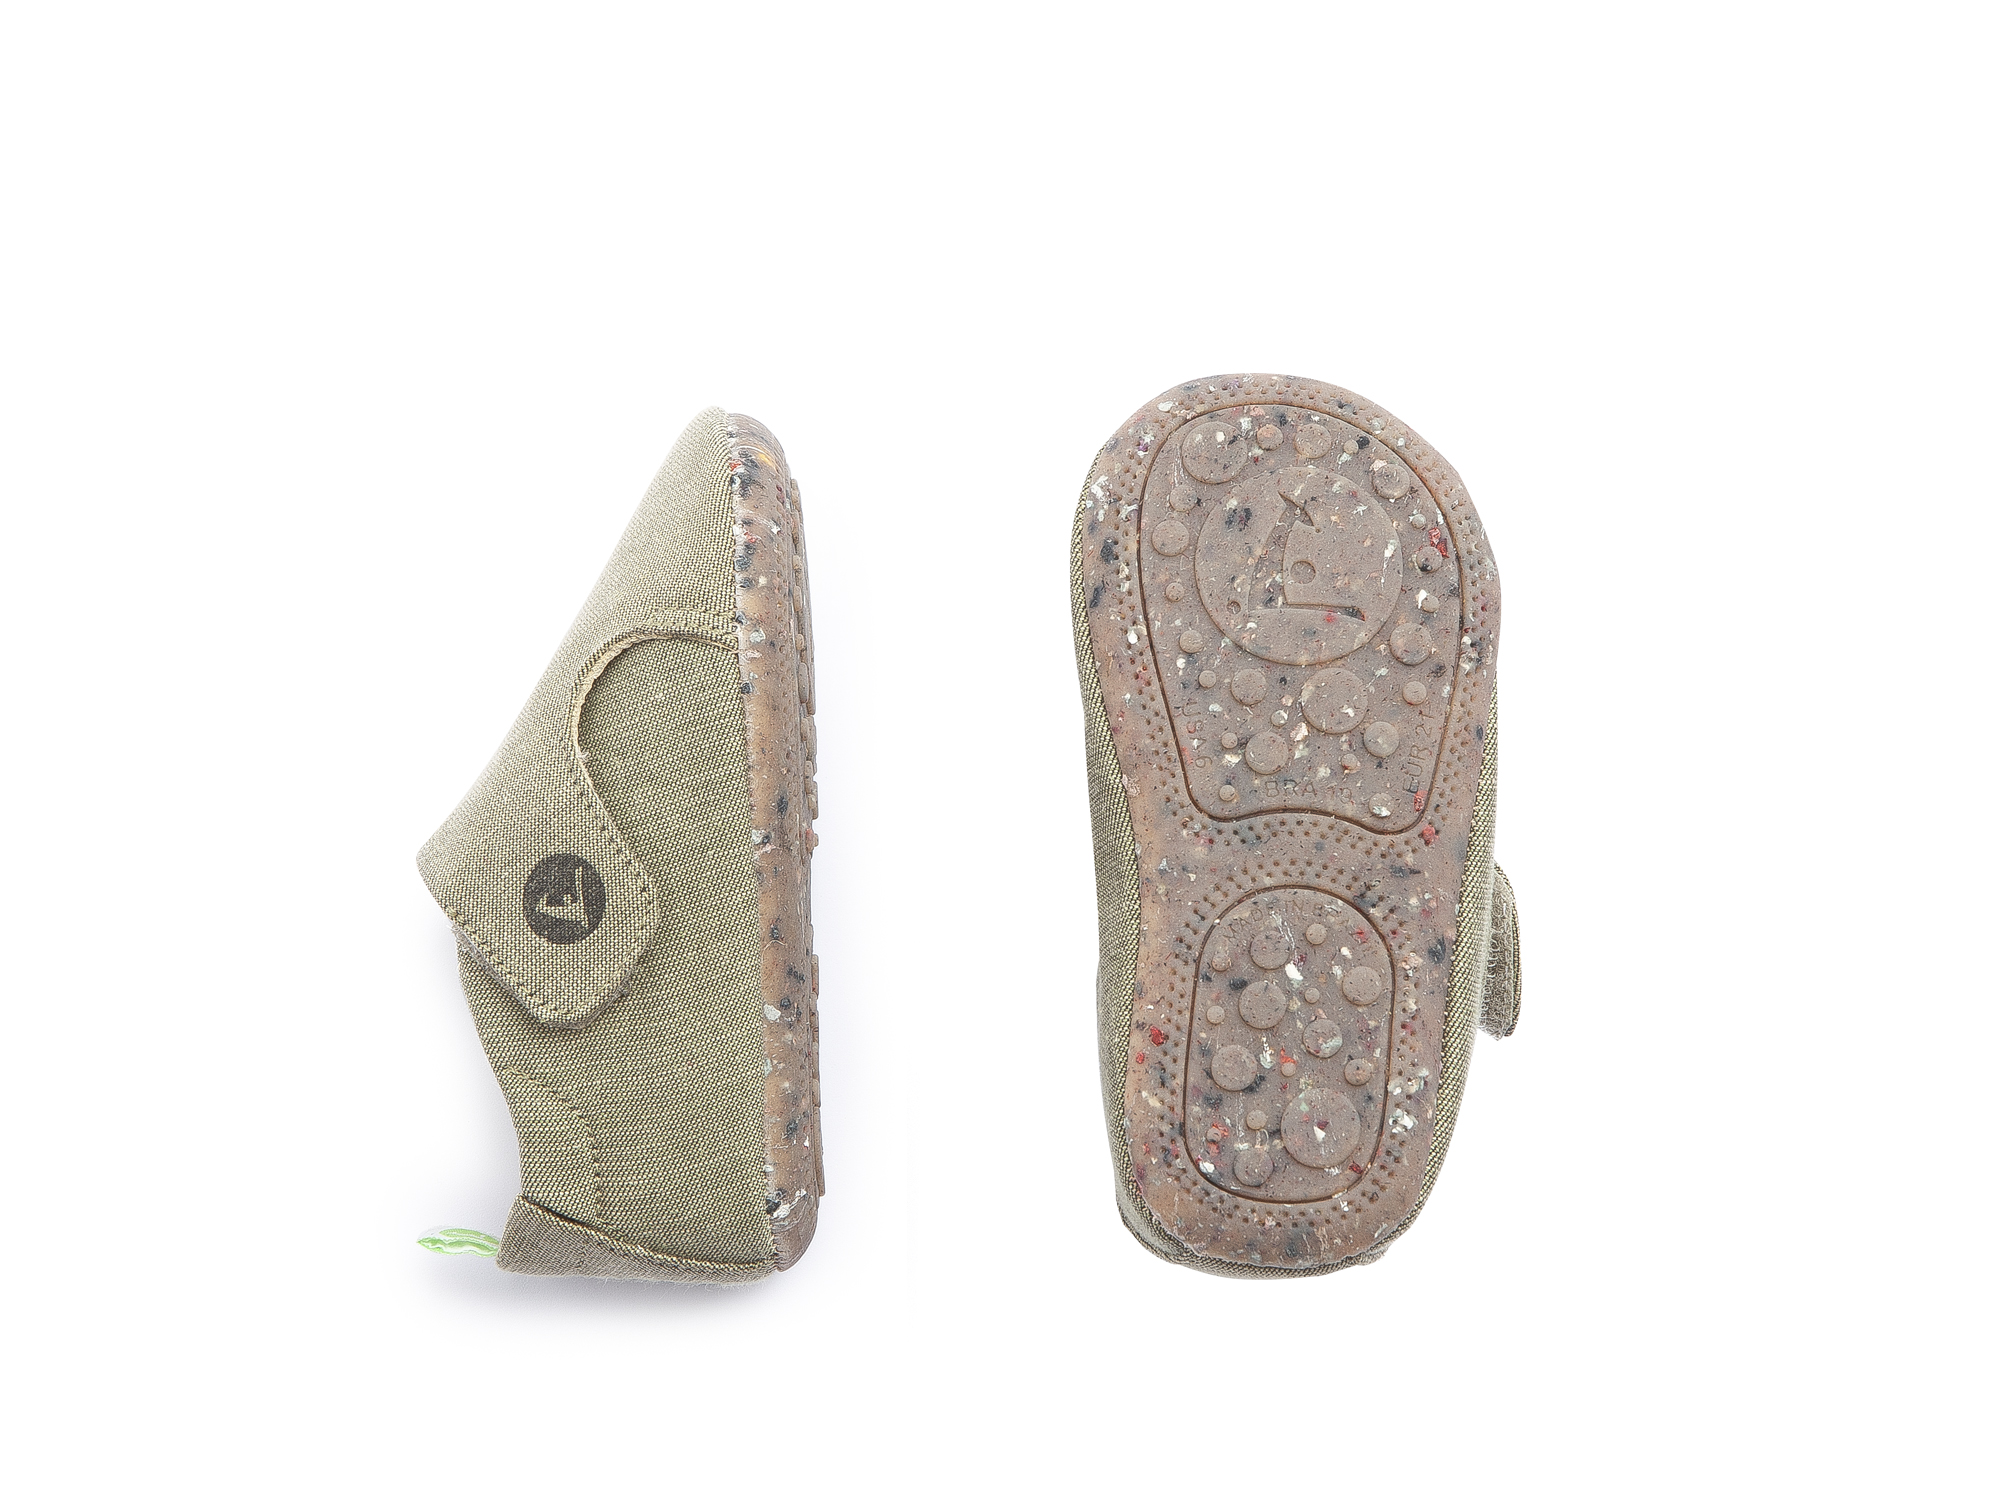 Sneaker Casual Greeny Light Olive Canvas Baby 0 à 2 anos - 2